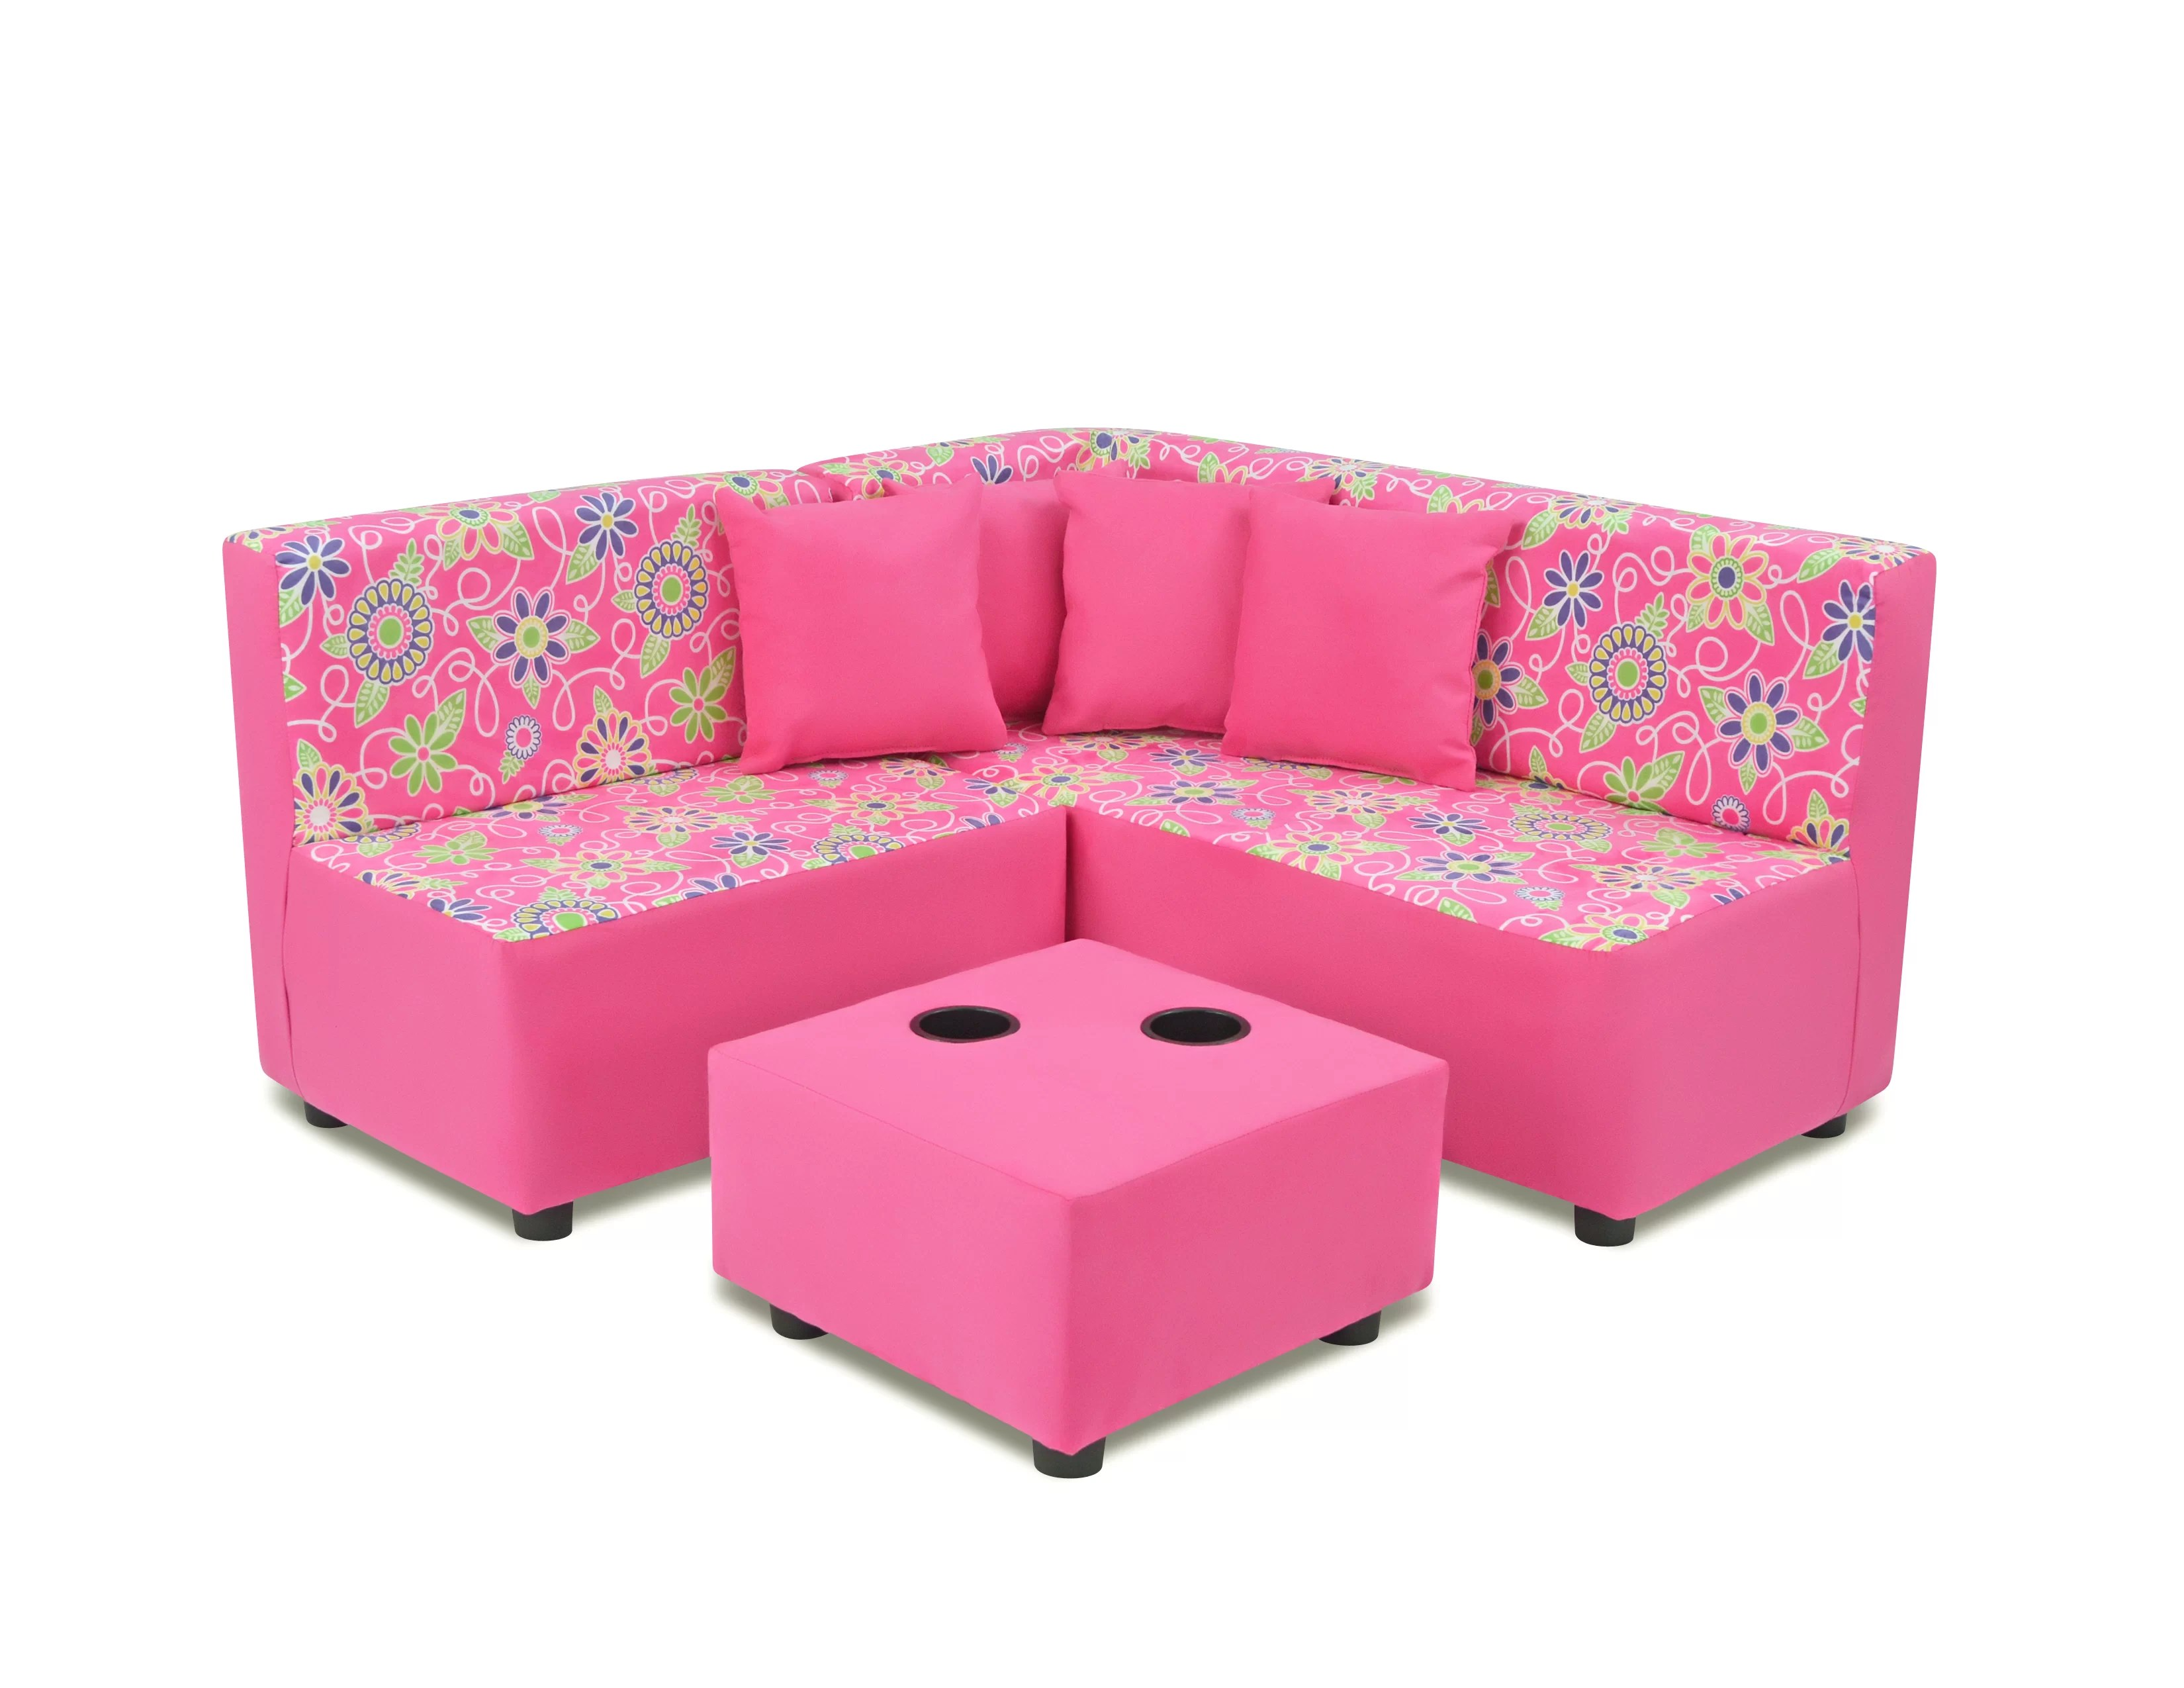 Sofa Set Action Neilsen Kids Microfiber Sofa Ottoman With Cup Holder